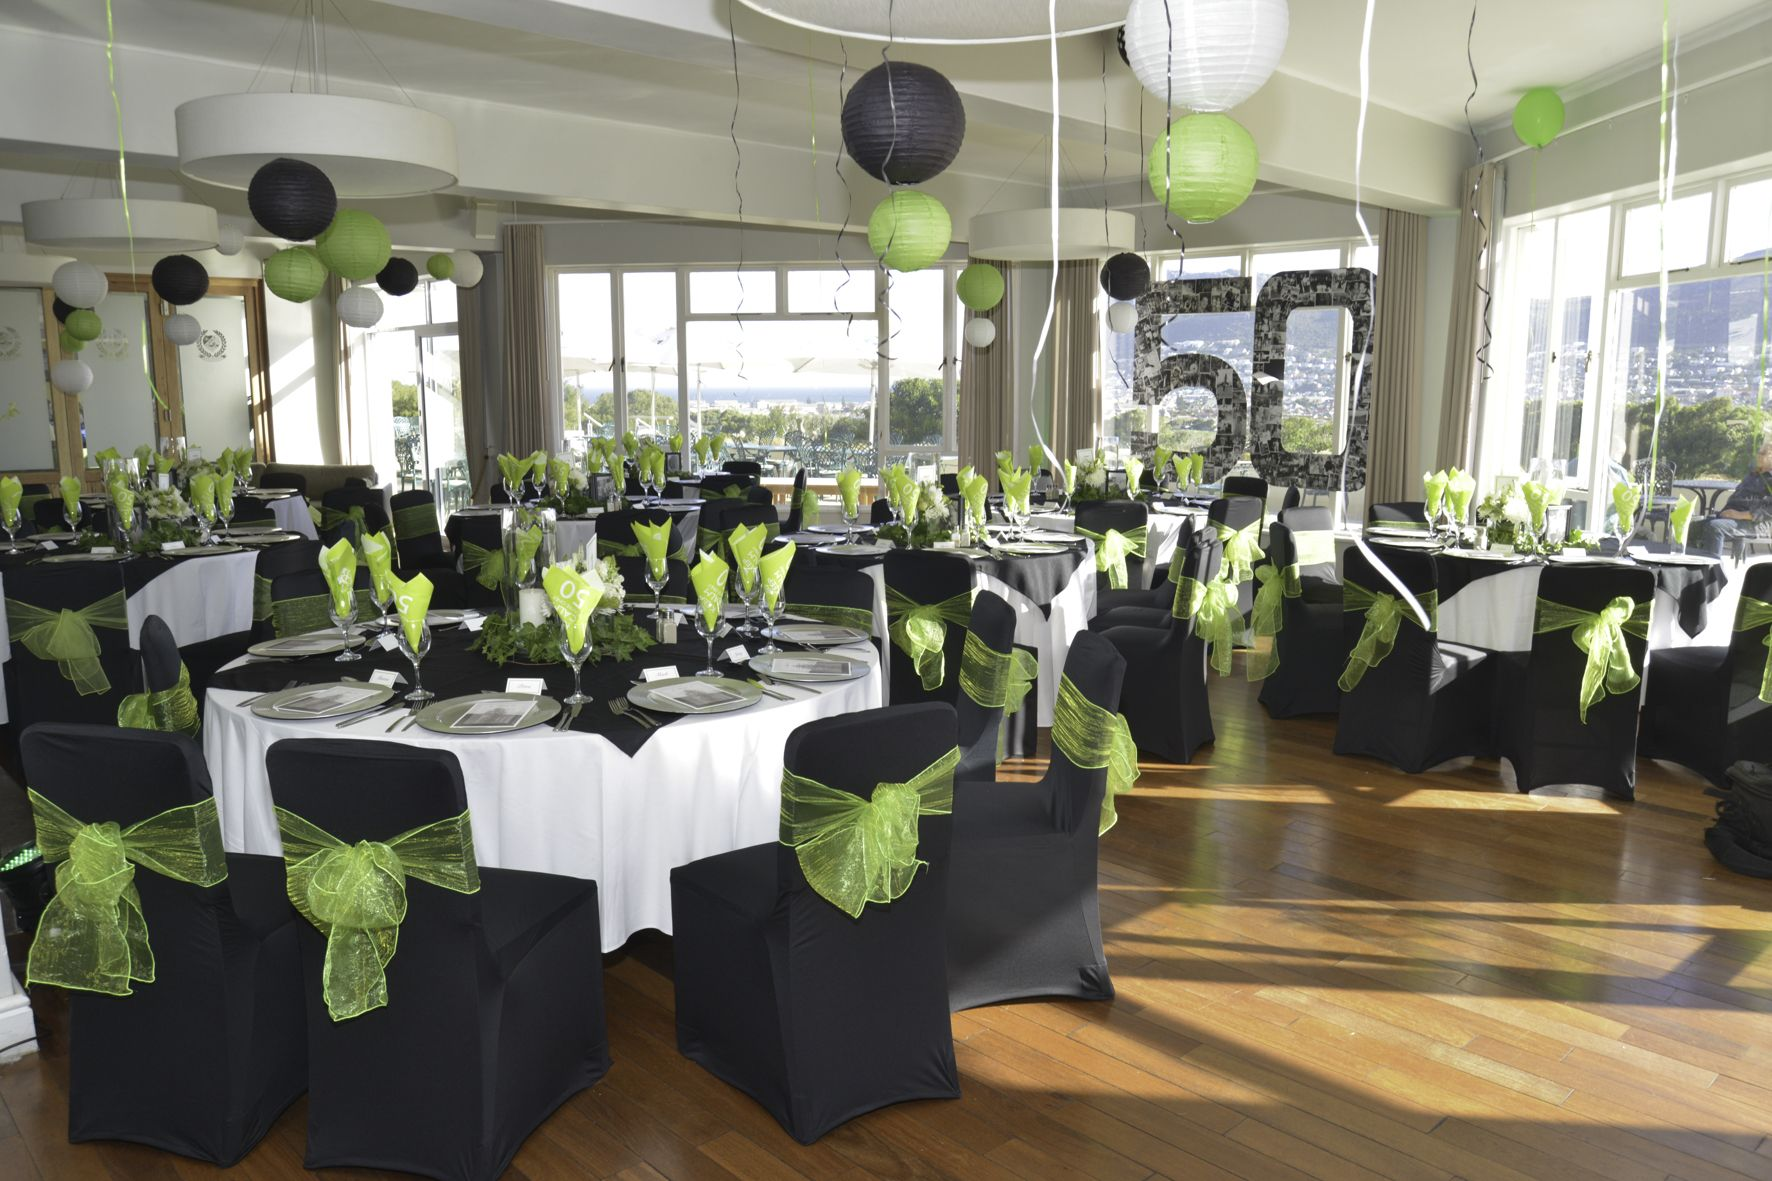 50 Birthday Parties Venue Decor In Black, White And Lime